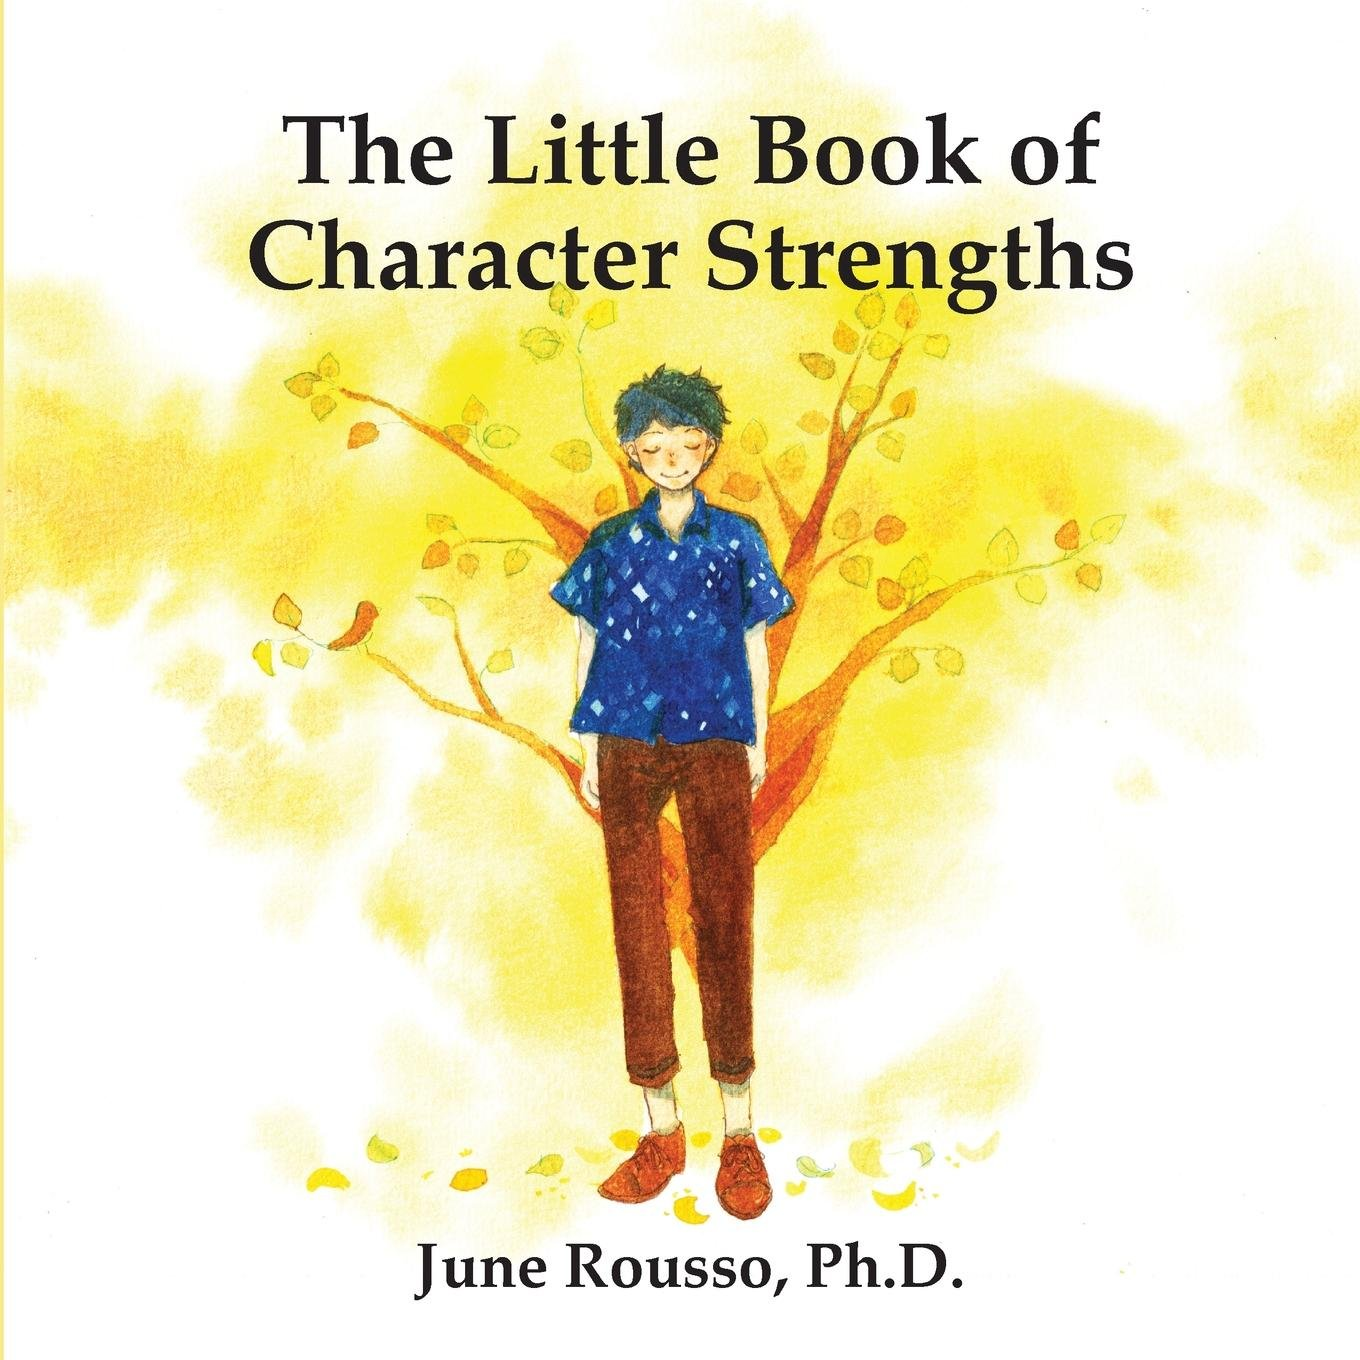 The Little Book of Character Strengths pdf